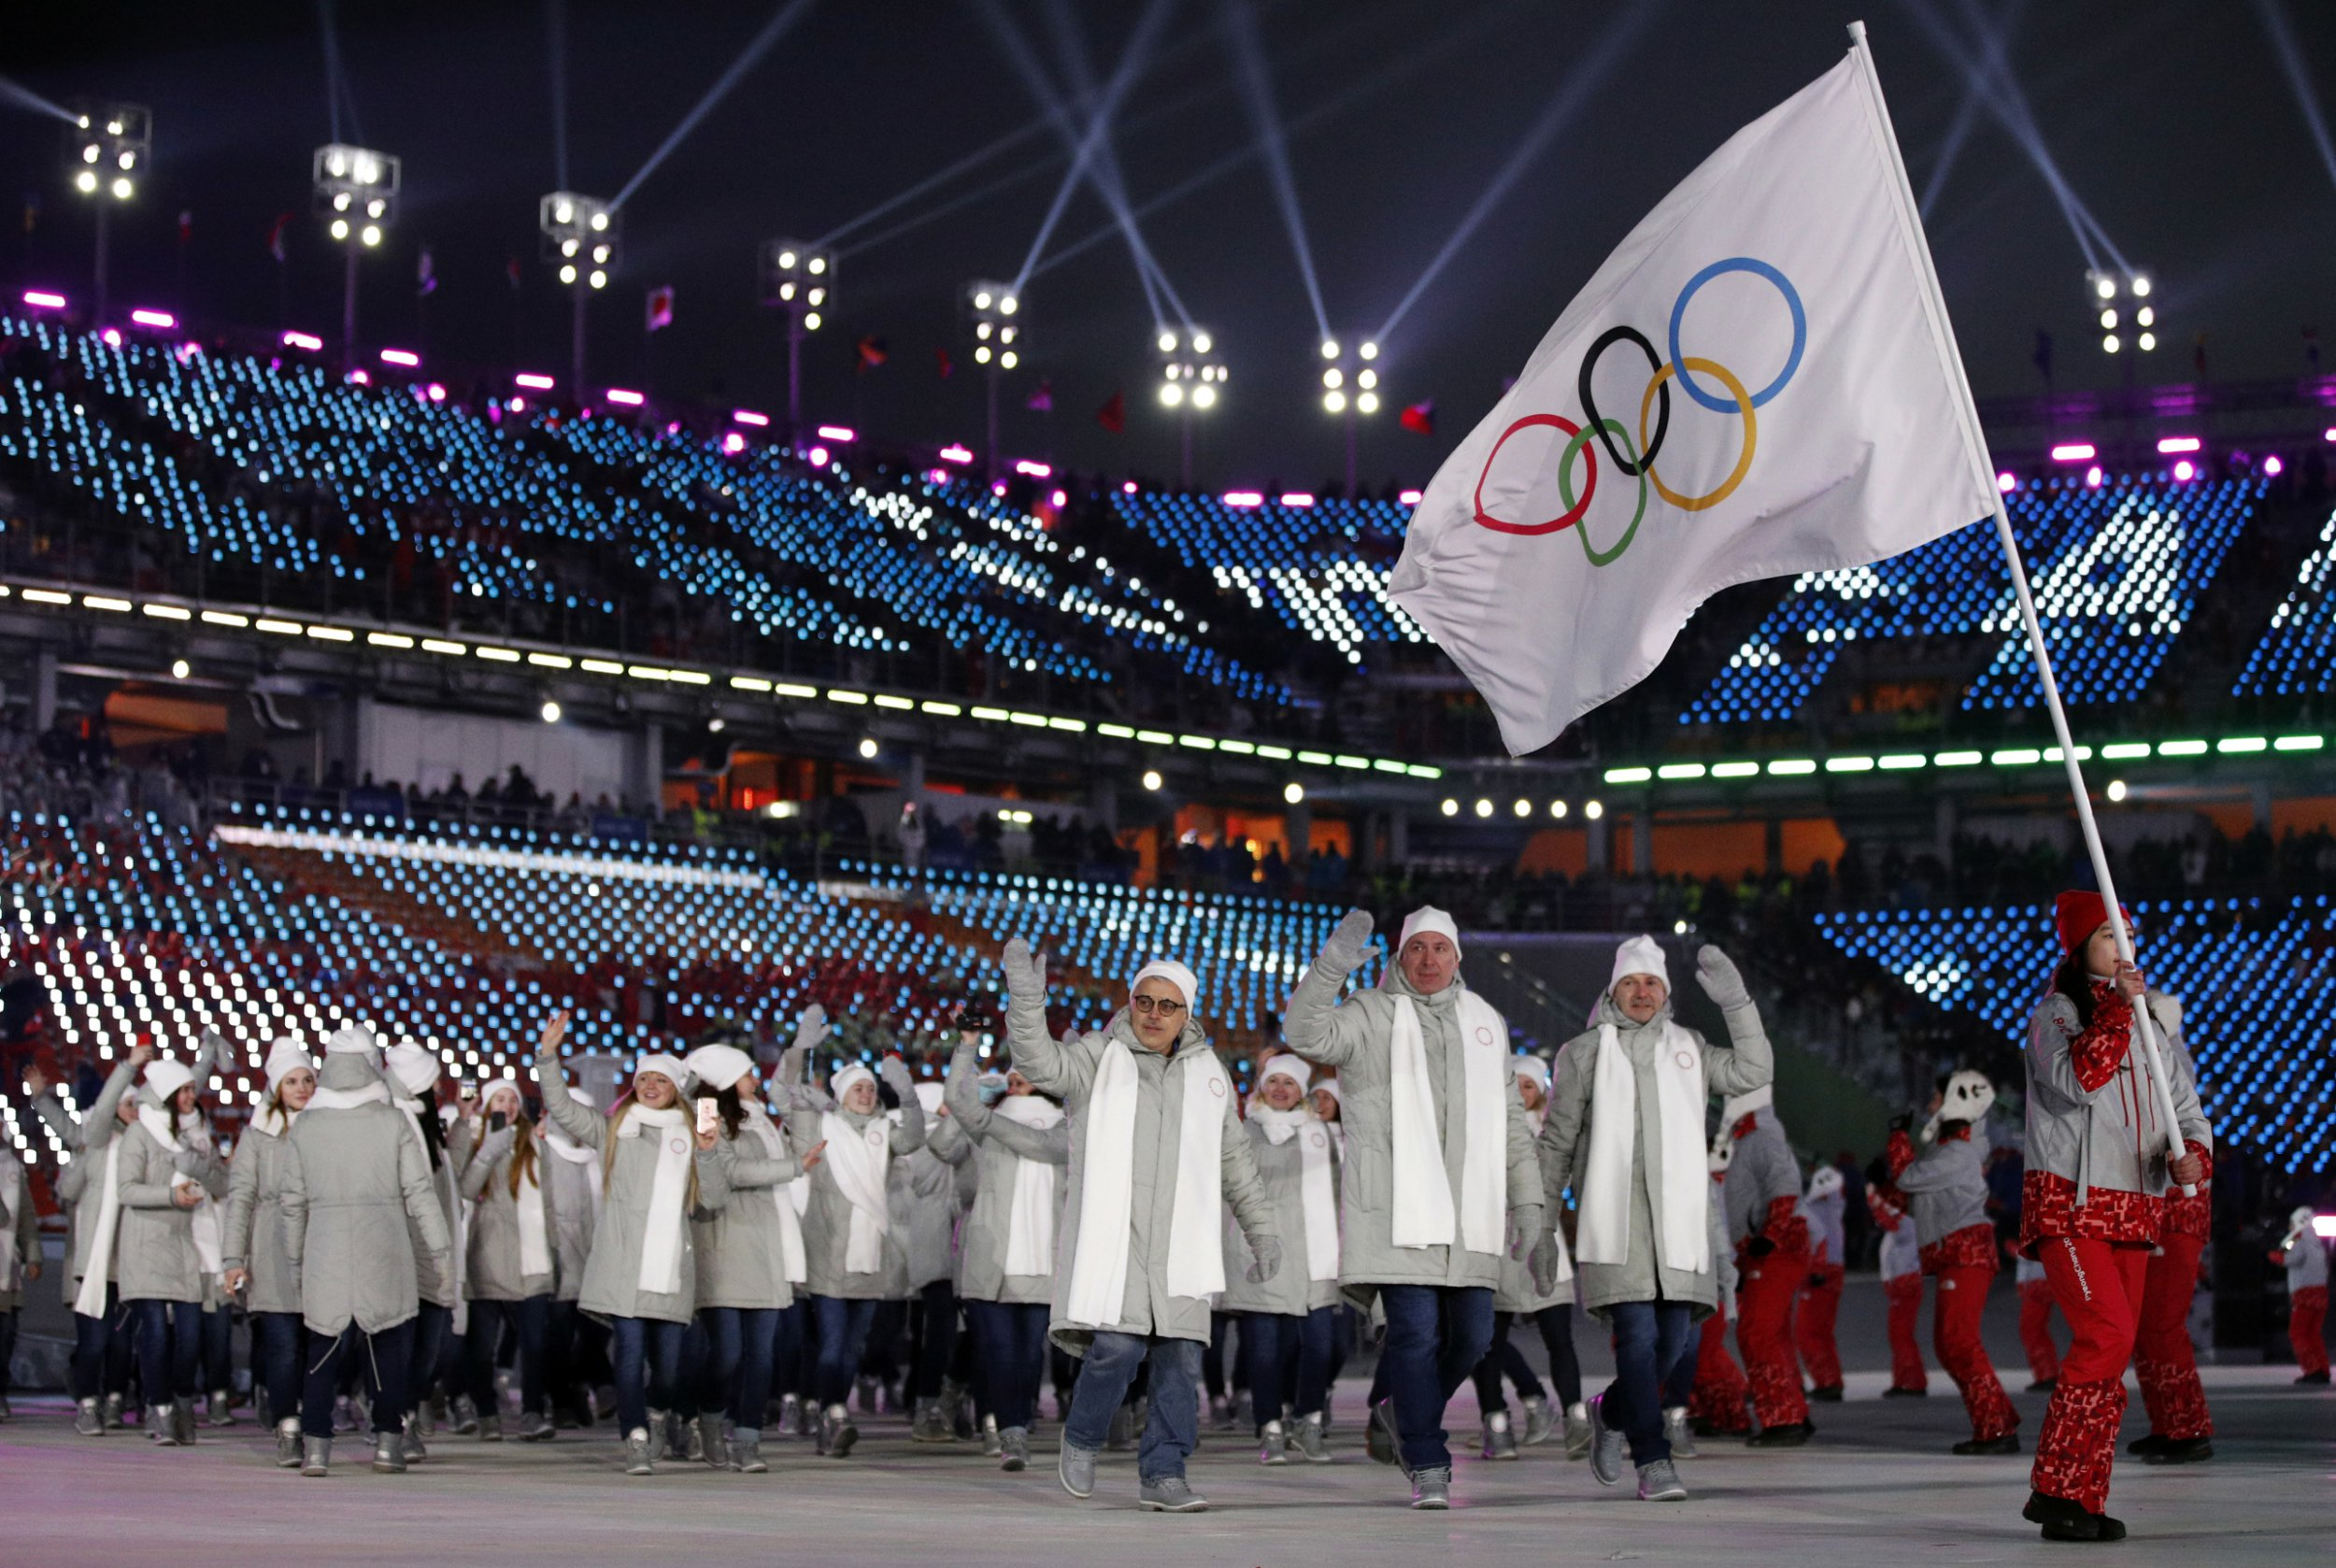 FILE - In this Friday, Feb. 9, 2018 file photo, athletes from Russia wave during the opening ceremony of the 2018 Winter Olympics in Pyeongchang, South Korea. Russia says the IOC has reinstated the country to the Olympic movement despite two failed doping tests by its athletes at the Pyeongchang Winter Olympics. In quotes carried by the TASS news agency, Russian Olympic Committee President Alexander Zhukov said a letter had been received earlier Wednesday, Feb. 28, 2018 from the IOC announcing the nation's reinstatement. (AP Photo/Jae C. Hong, file)